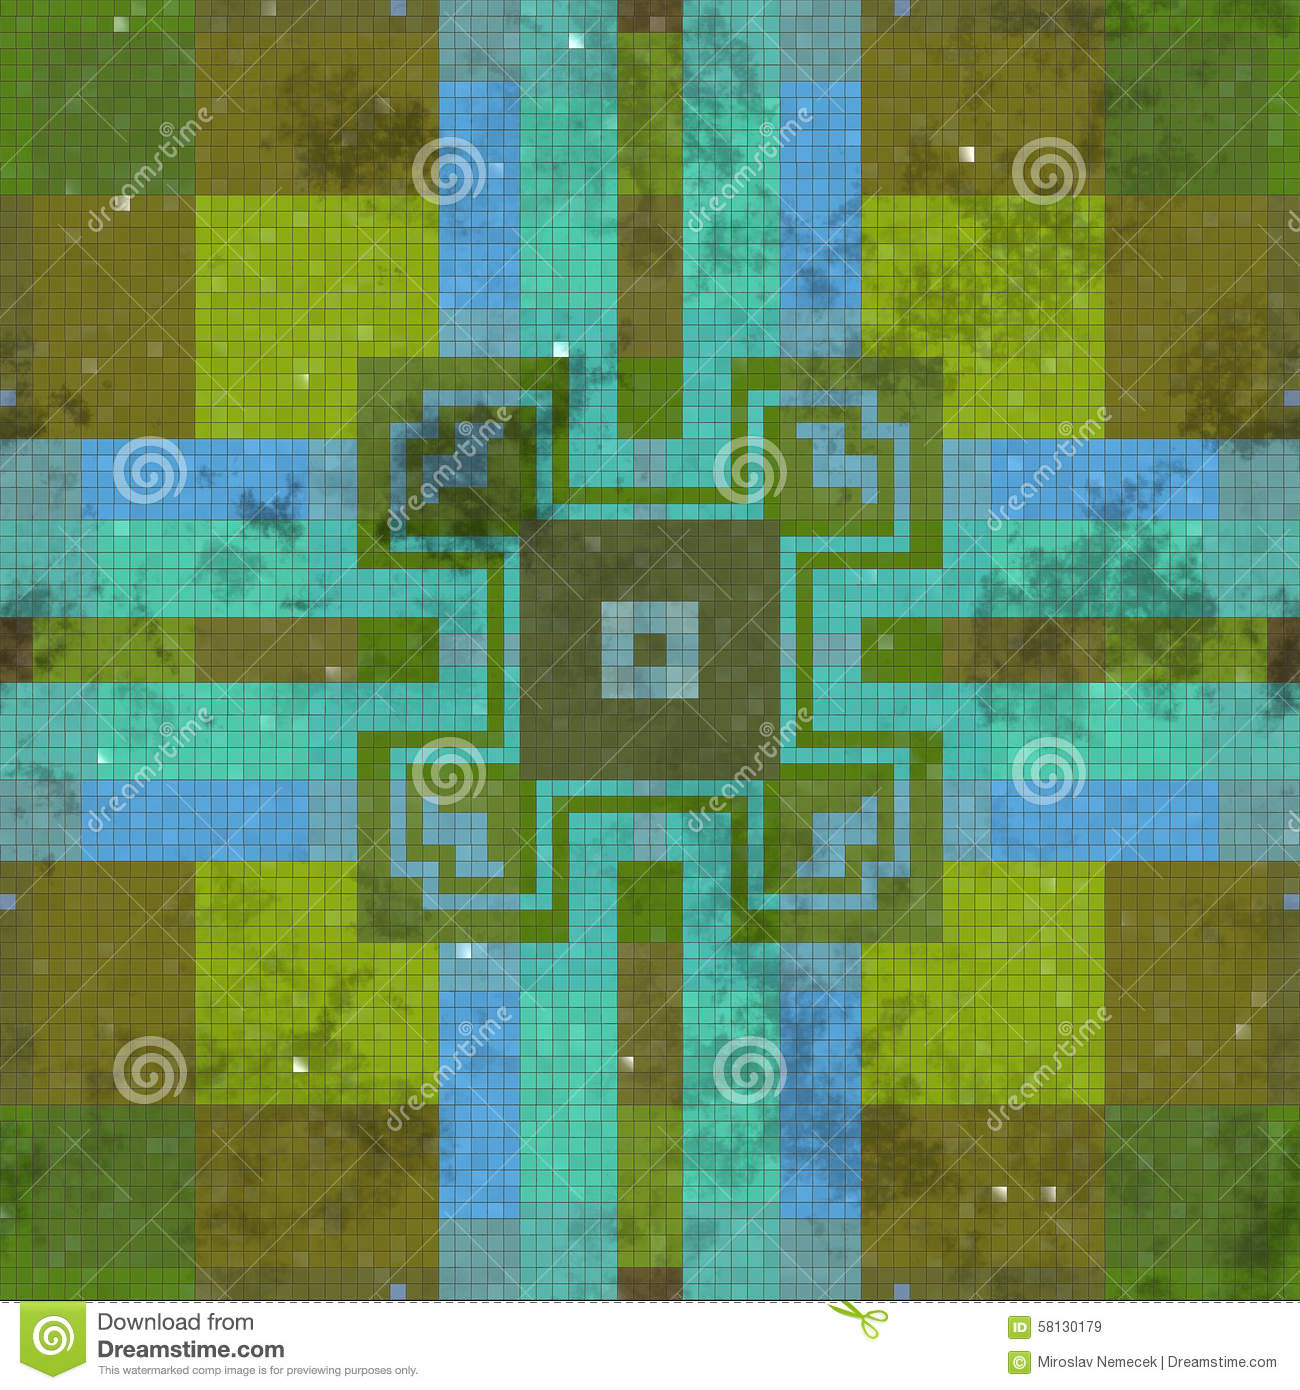 generated seamless tile background - photo #24